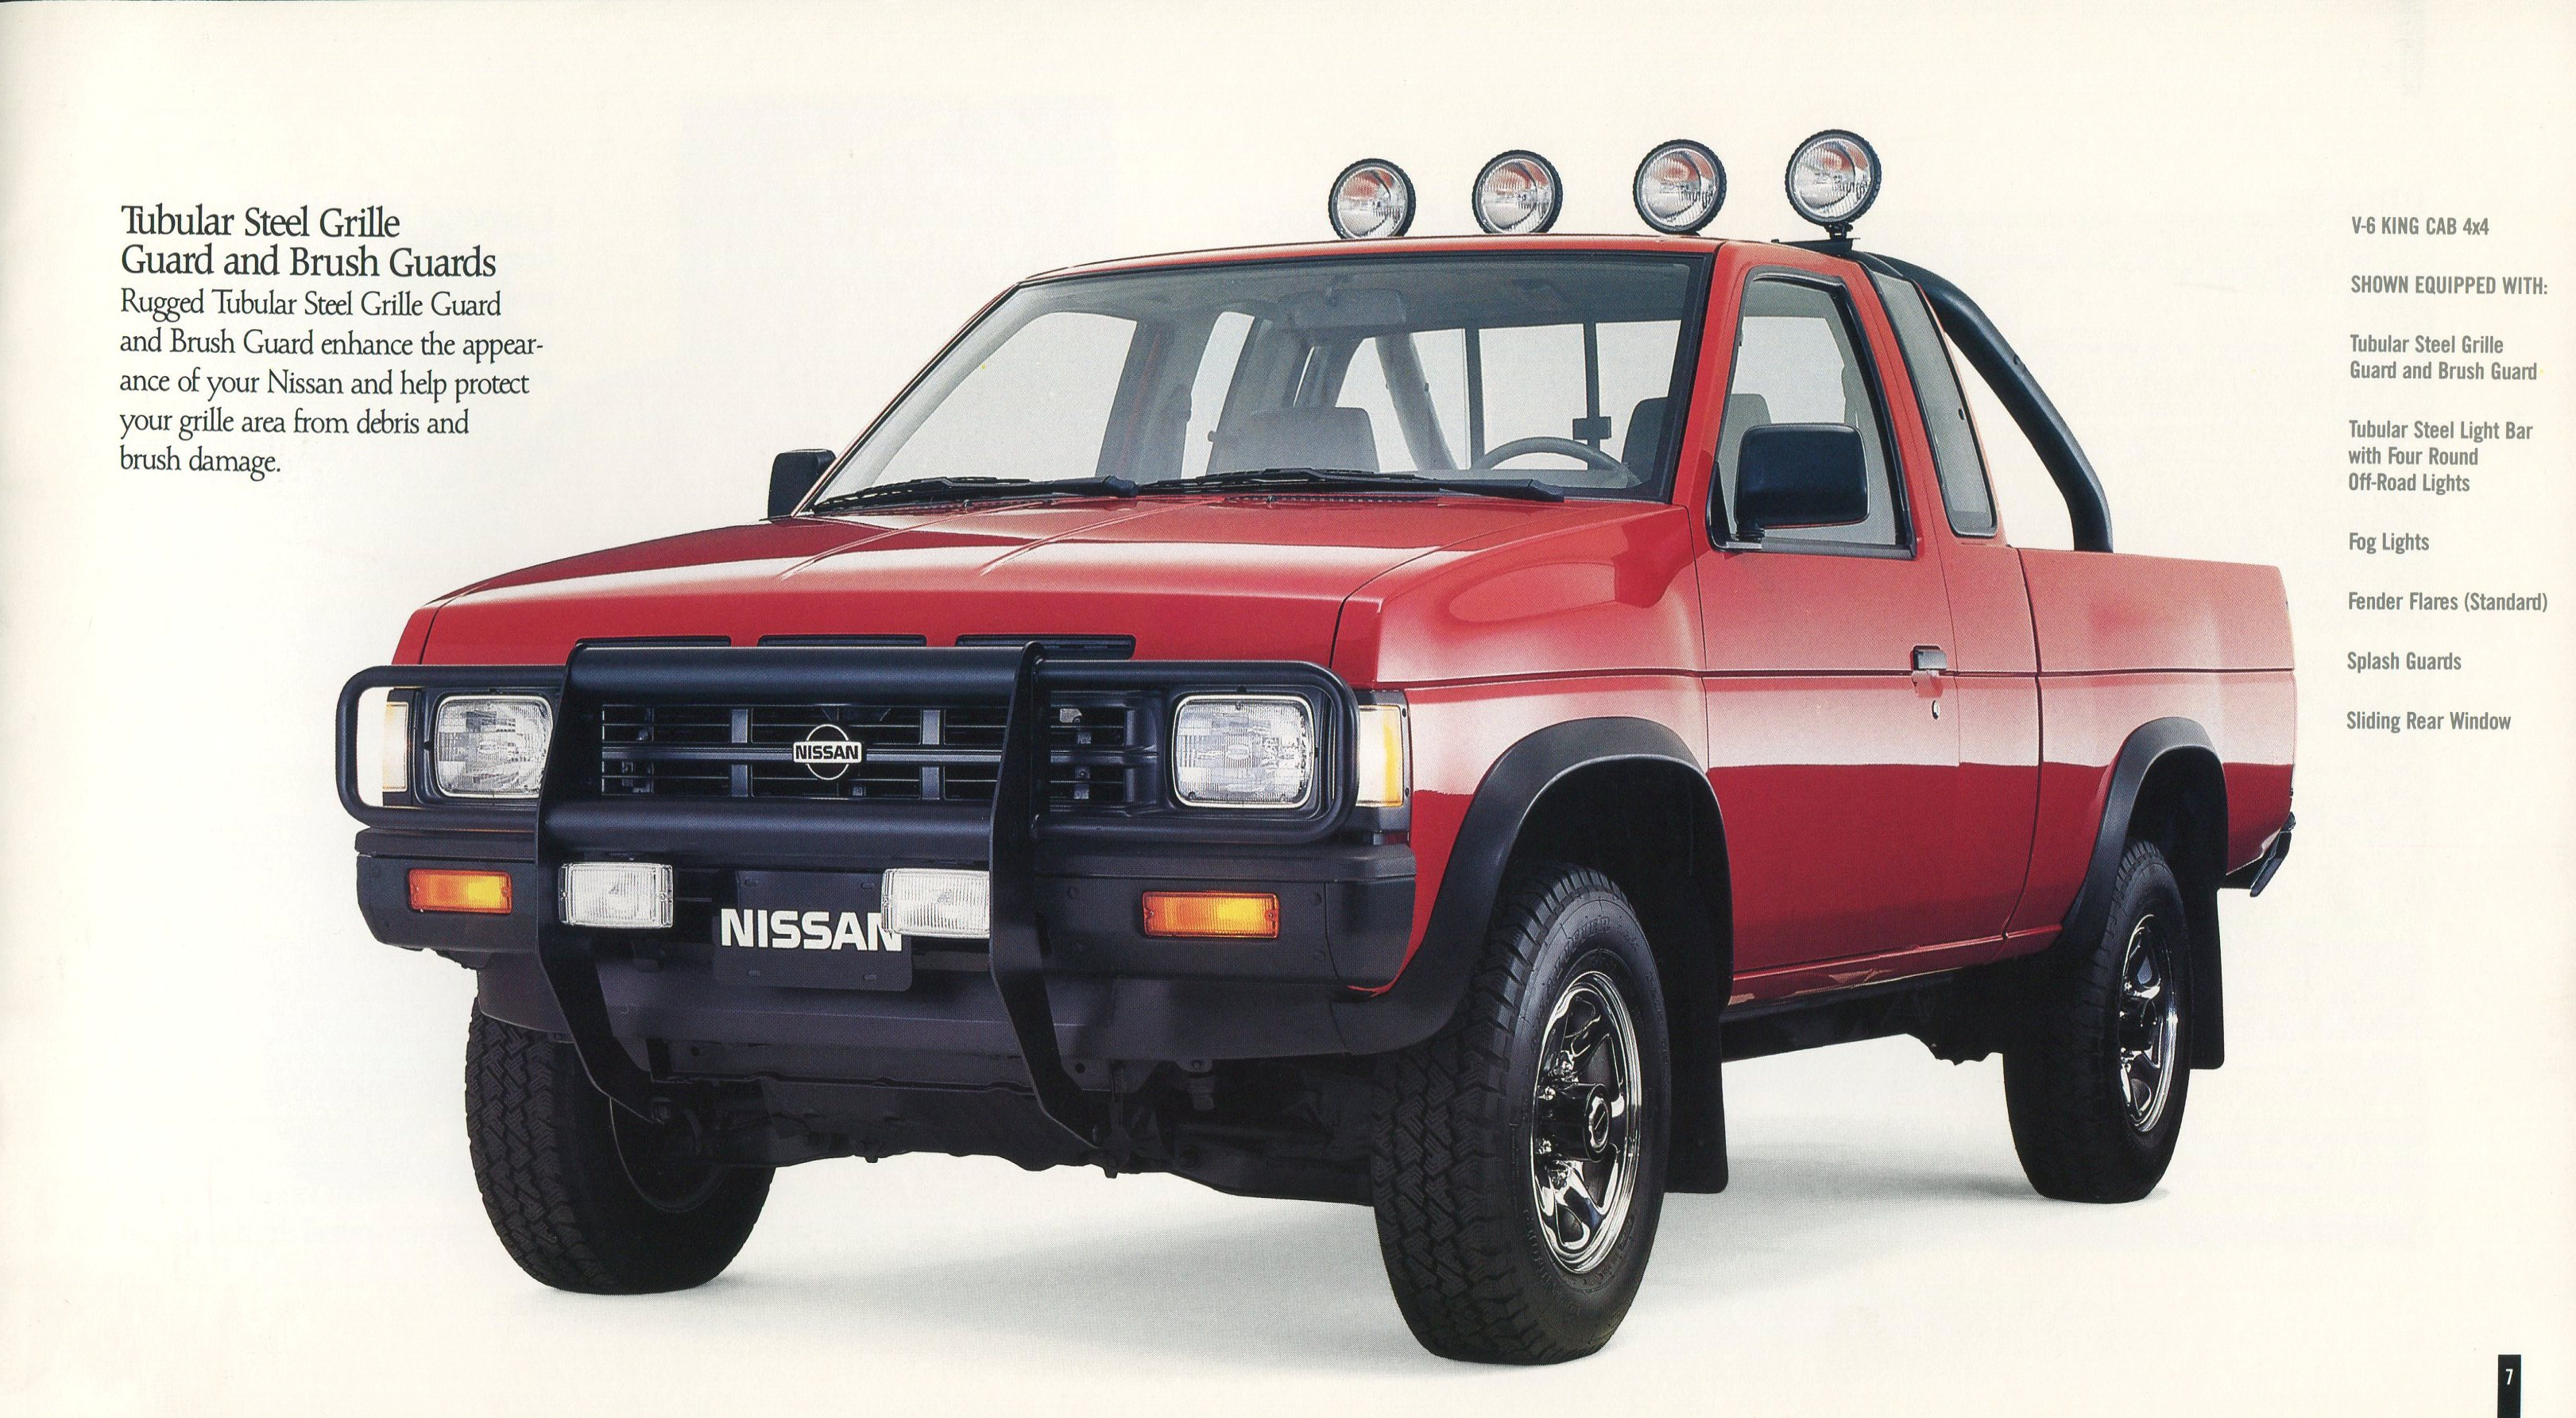 1989 Nissan Pickup Car Interior Design